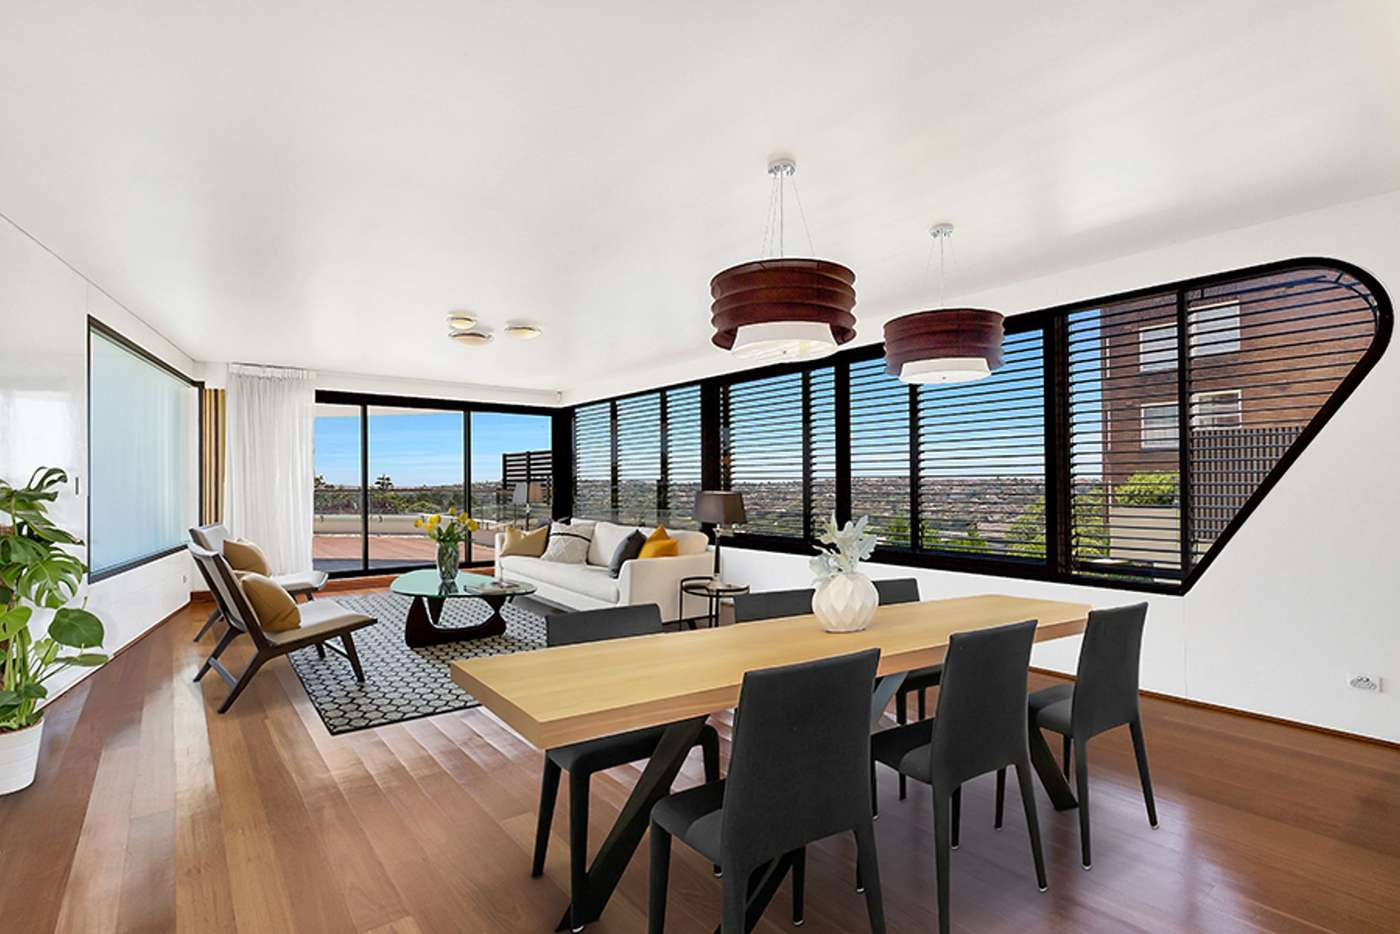 Main view of Homely apartment listing, 4/20 Benelong Crescent, Bellevue Hill NSW 2023